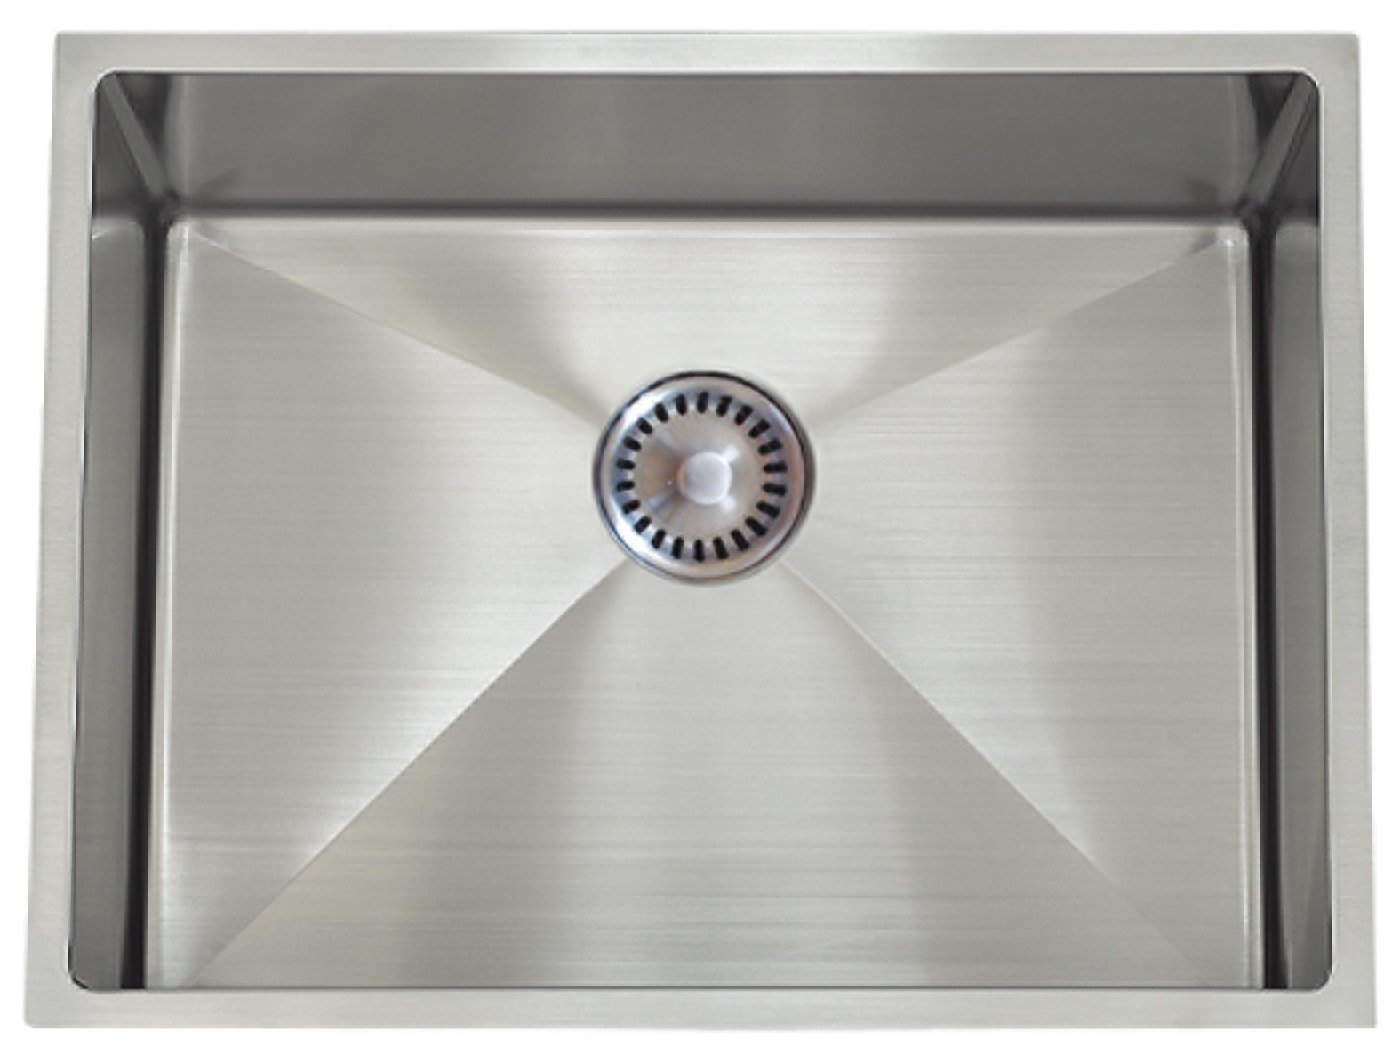 Lenova PC-SS-12Ri-S22 PermaClean 16-Gauge Stainless Steel Single Bowl Under-Mount Kitchen Sink, 22-1/2 x 17-1/2-Inch